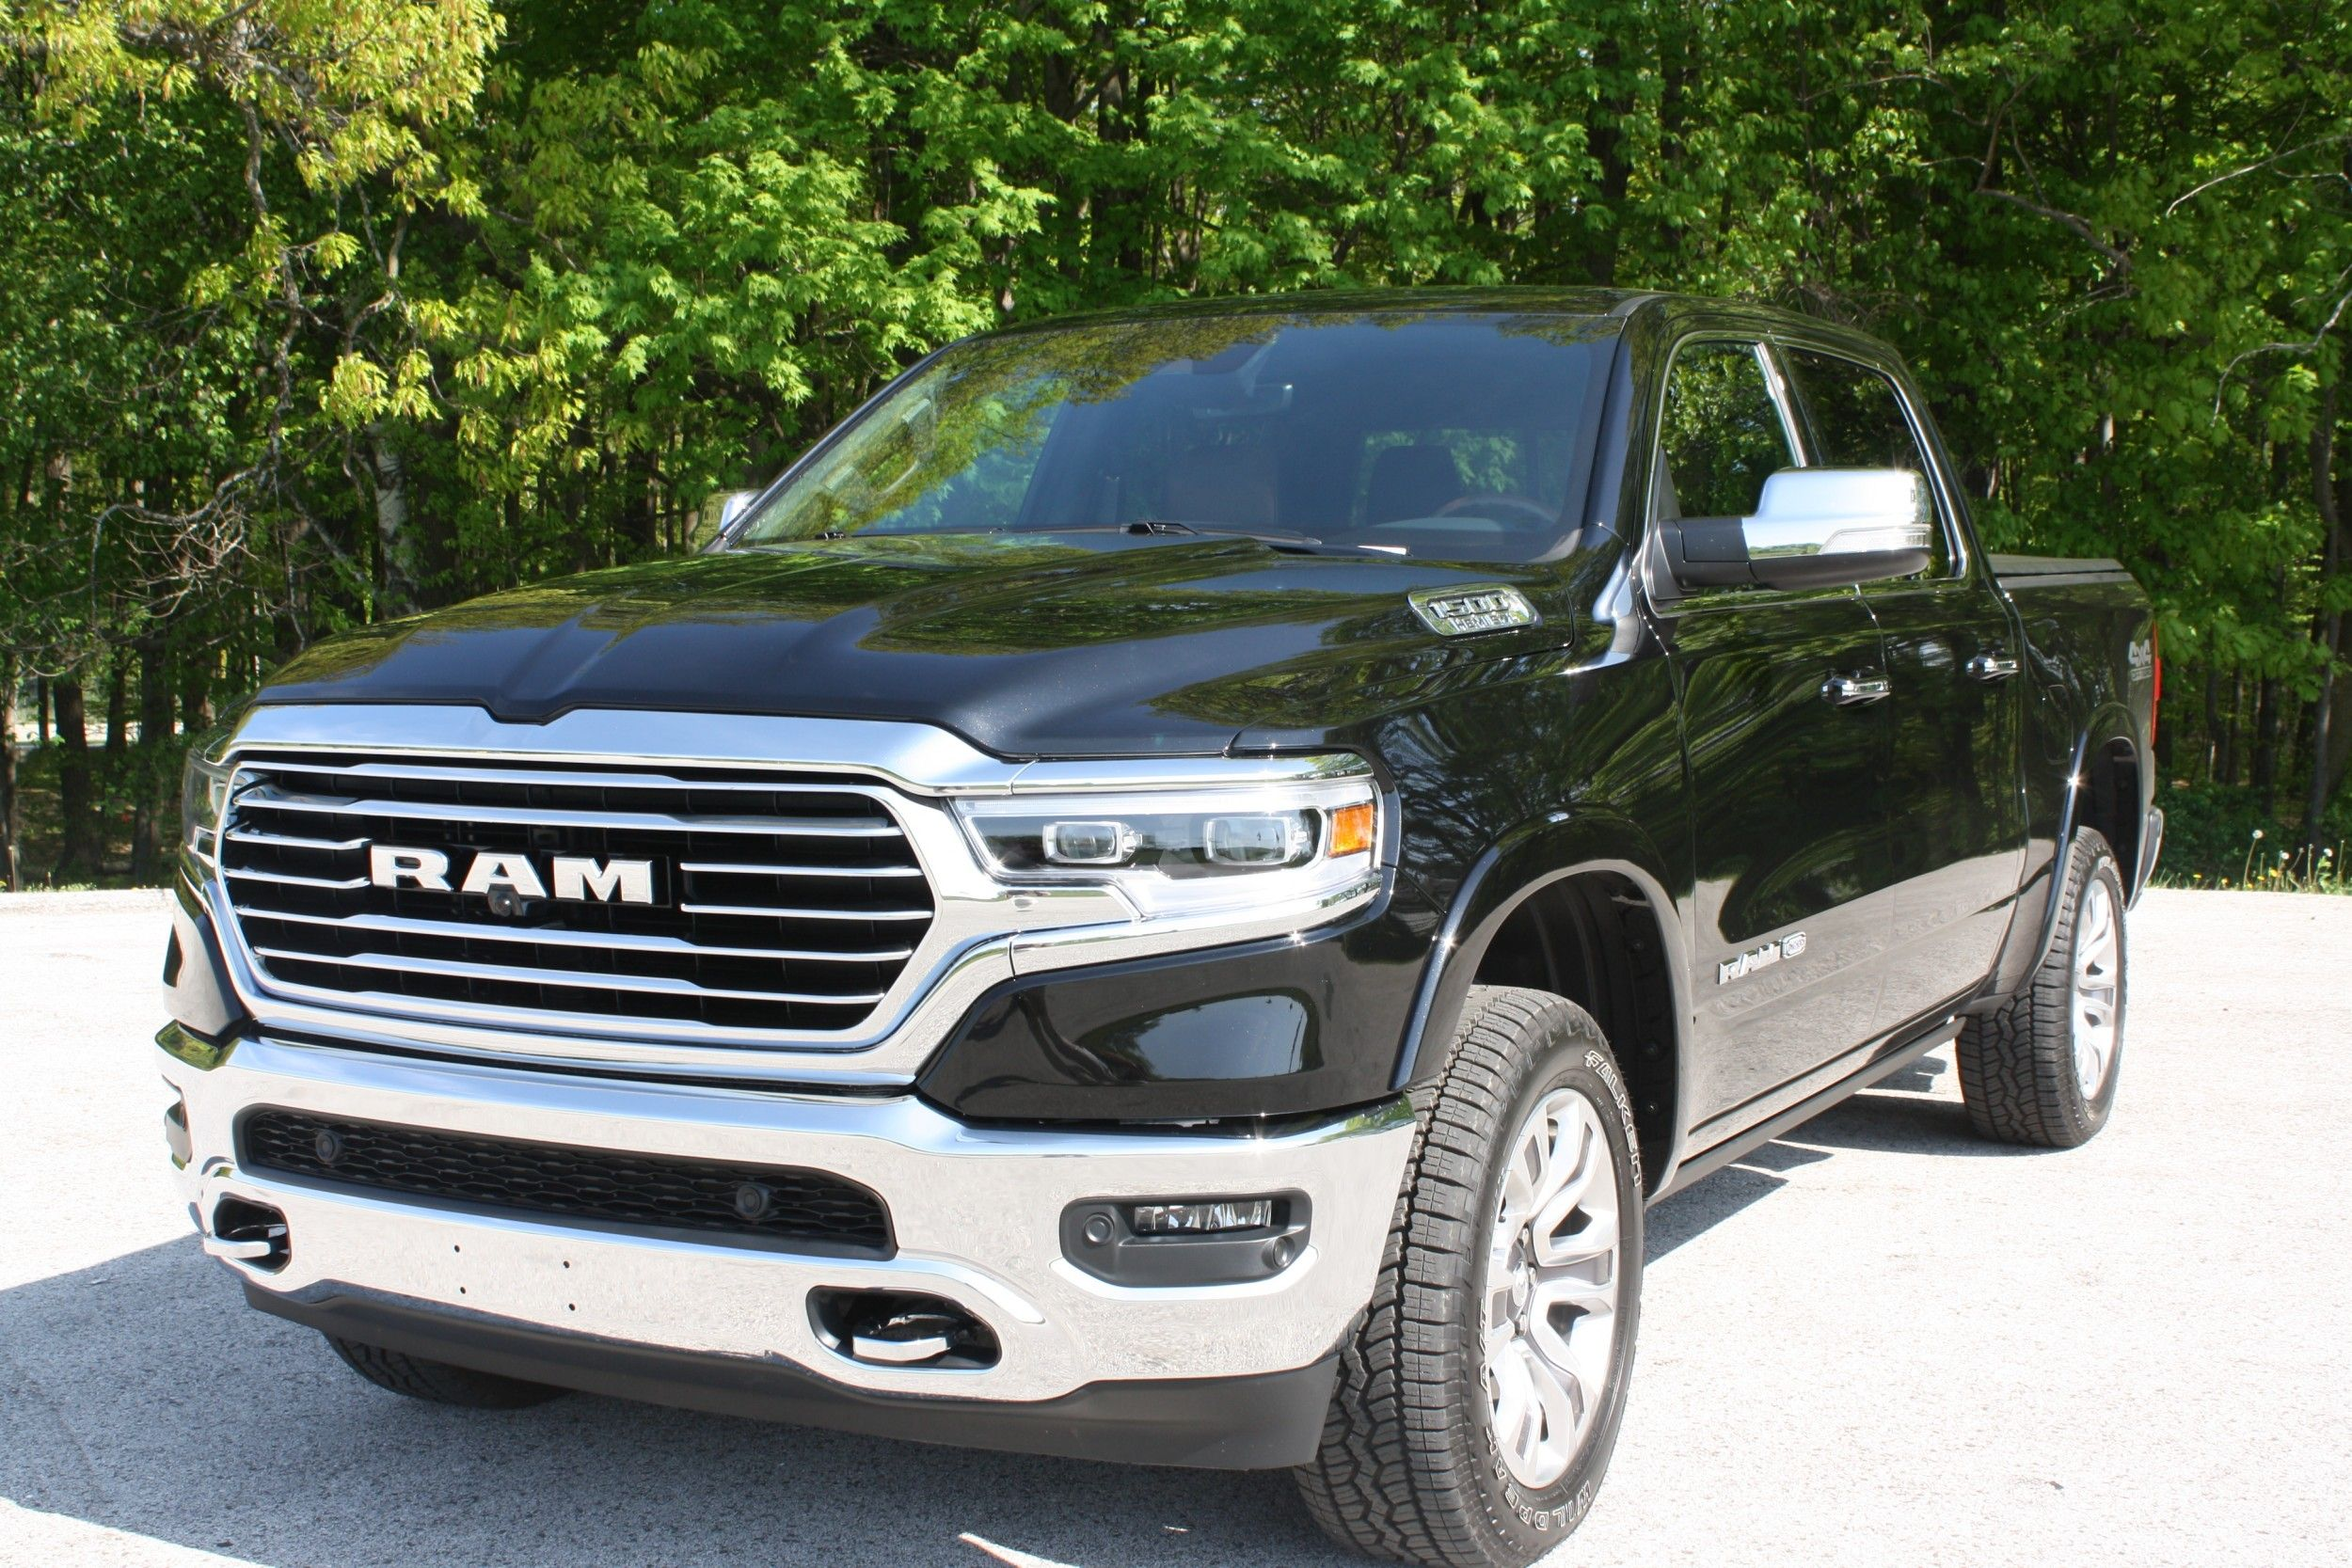 Road Test Review 2019 Ram 1500 Laramie Longhorn 4x4 By Carl Malek Pickup Trucks Road Test Buick Regal Test Review